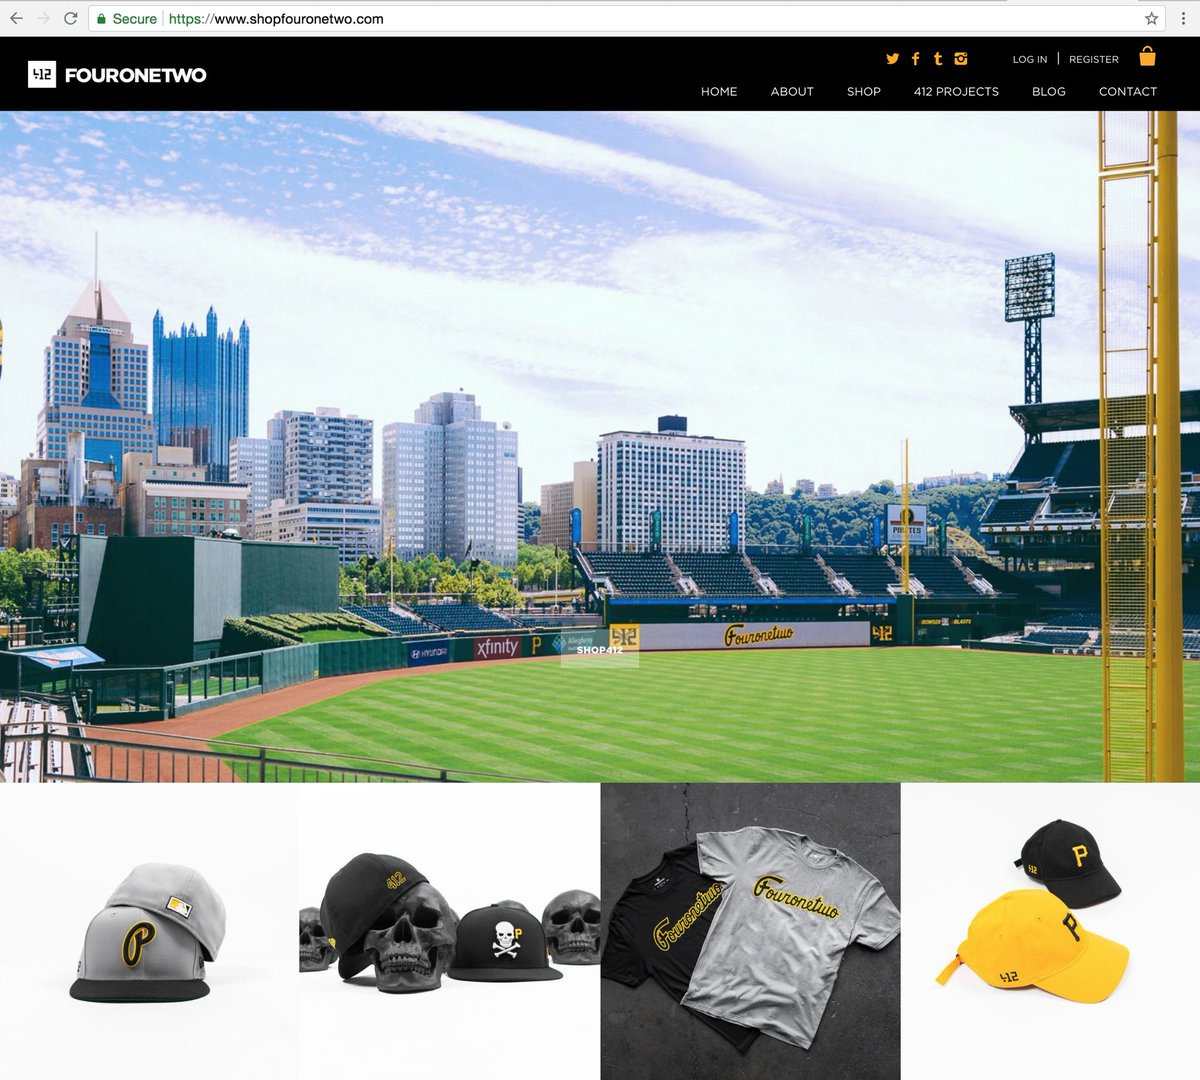 The 412 x New Era x Pittsburgh Pirates Season 2 capsule collection is now  available online 207a3e6e6